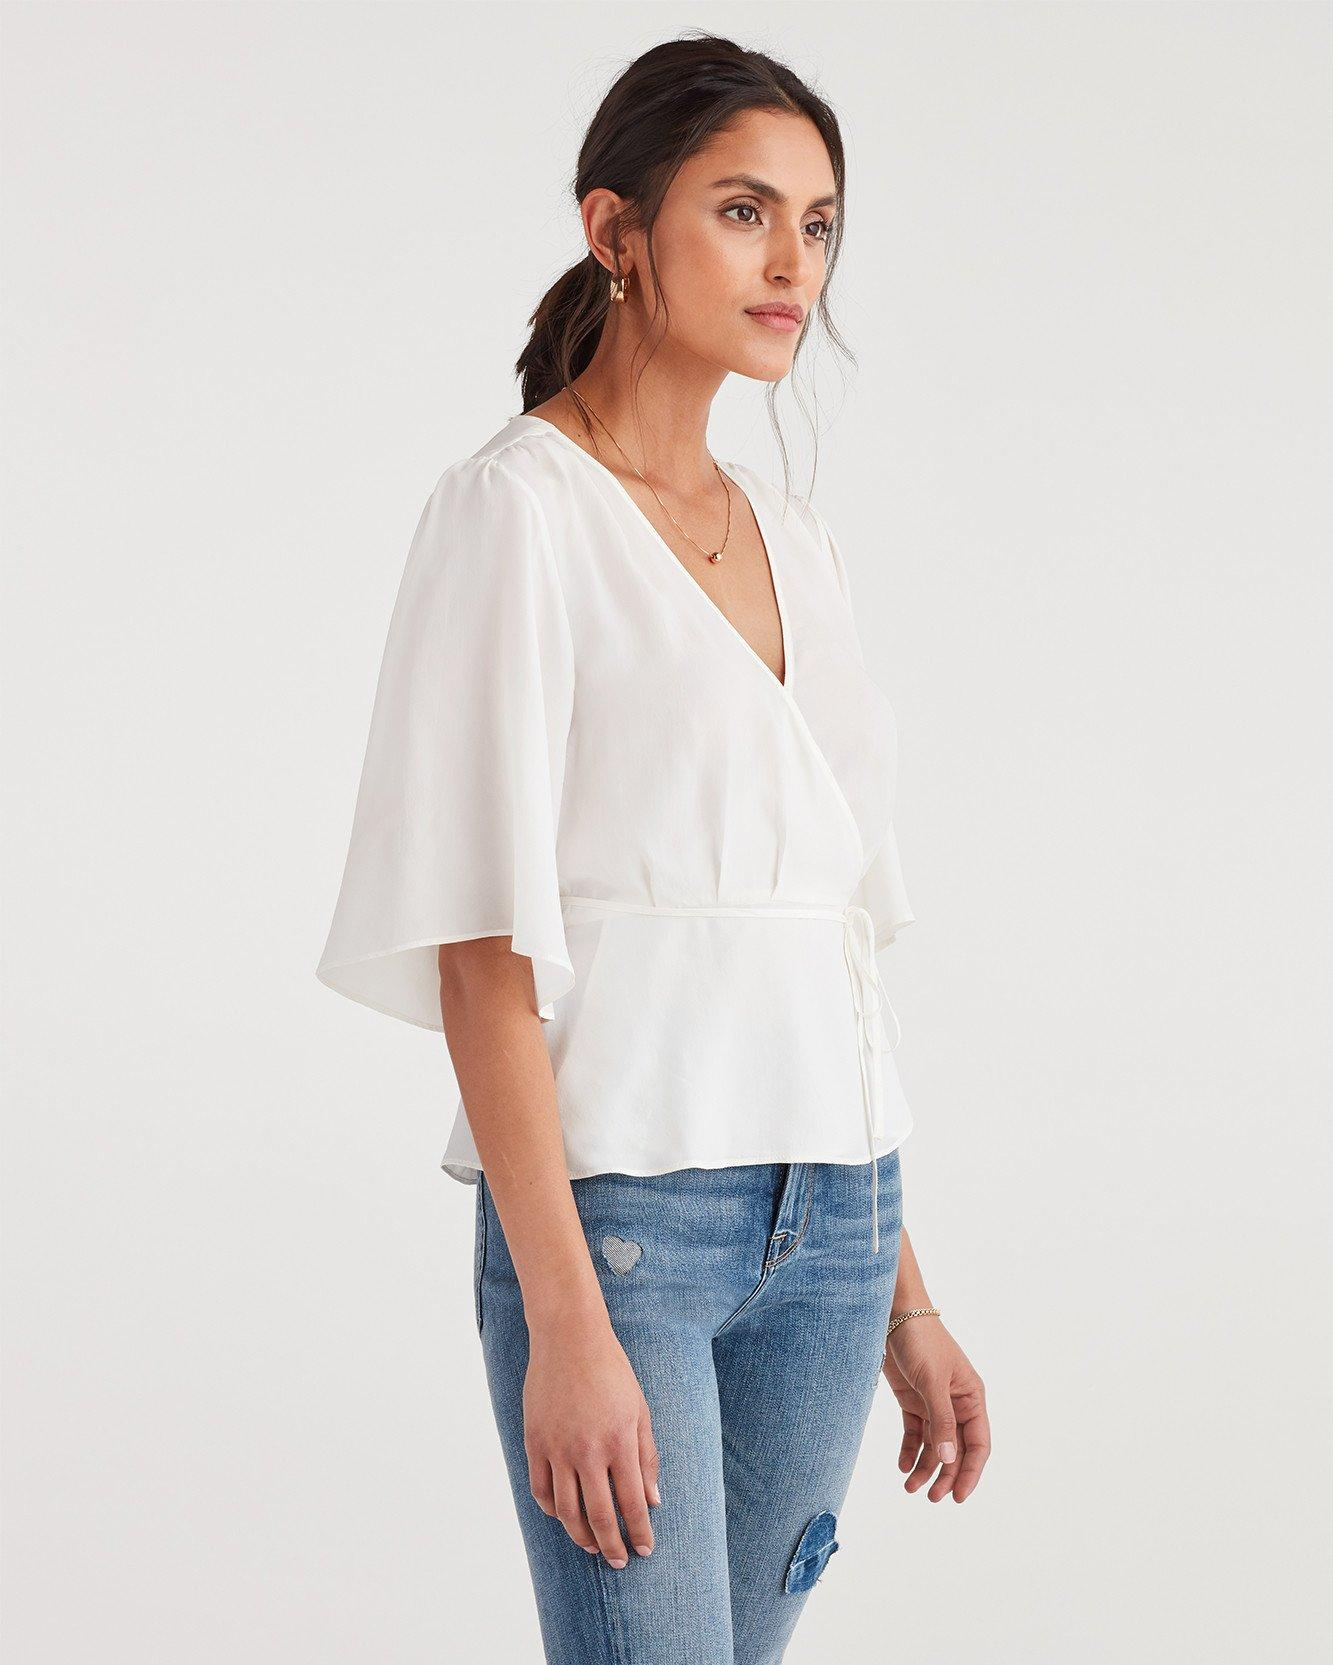 e29183e18ec 7 For All Mankind Wrap Front Short Sleeve Top in White - Lyst